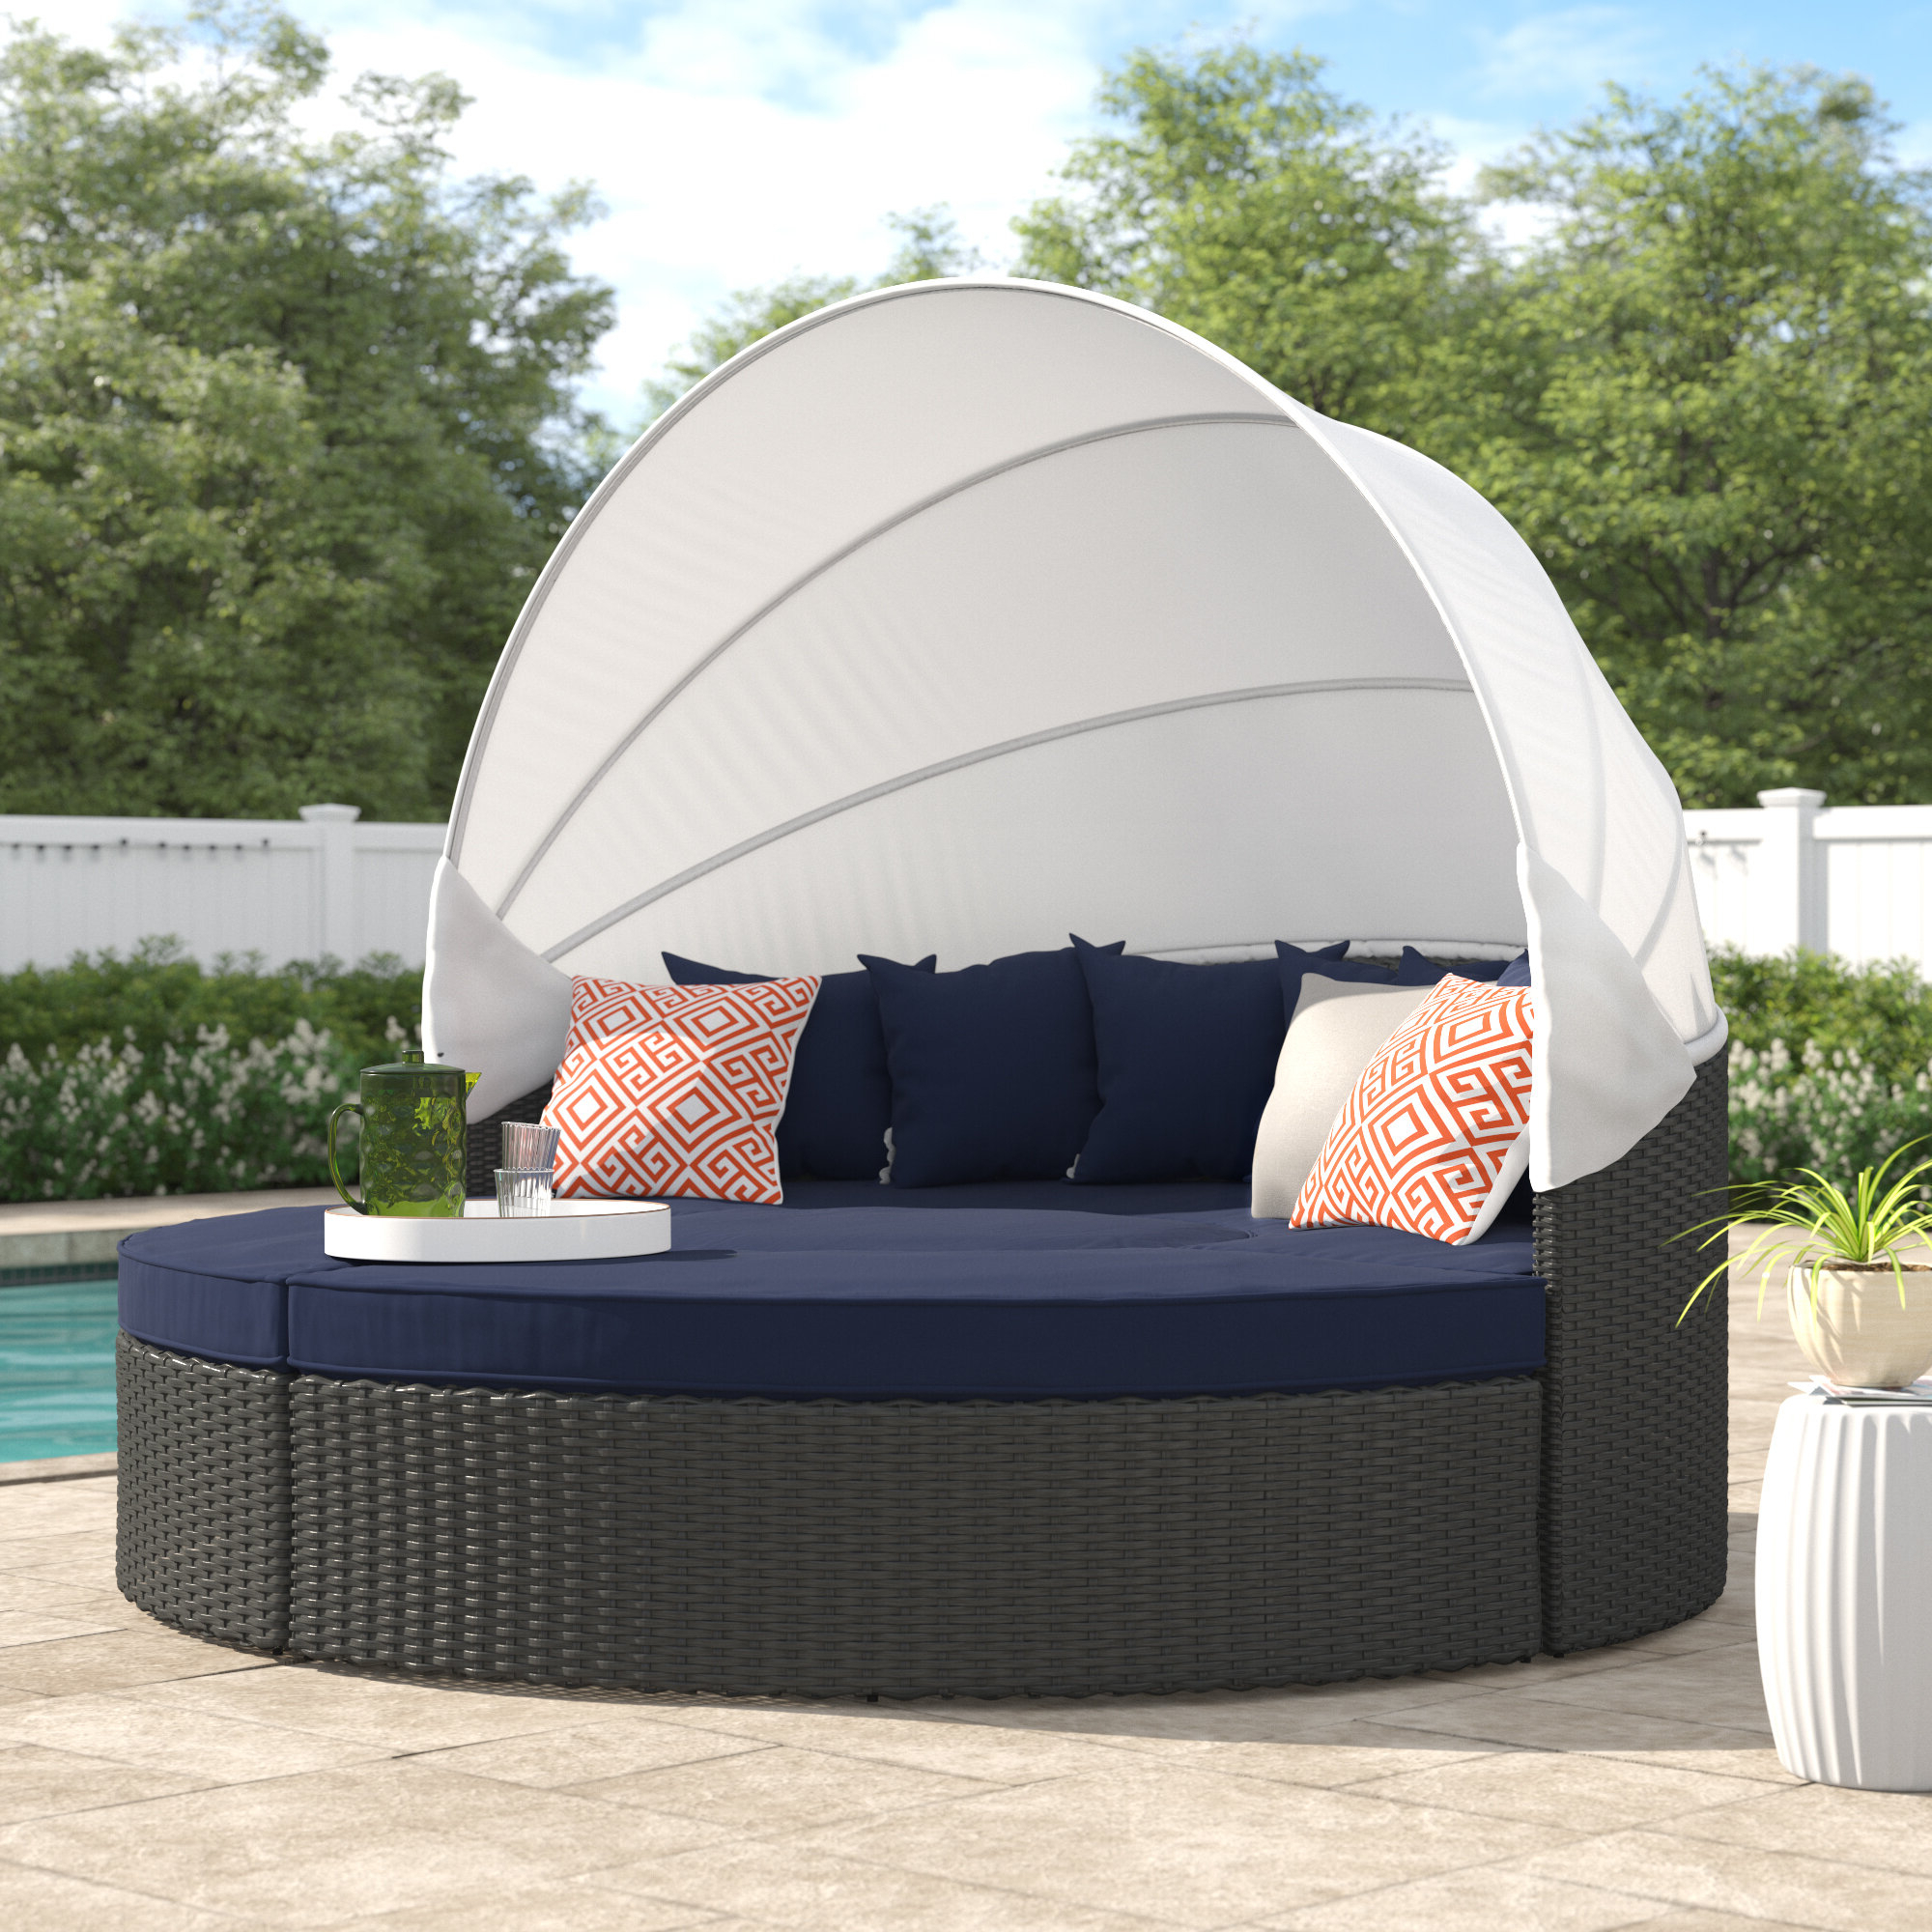 2020 Carrasco Patio Daybeds With Cushions With Regard To Tripp Patio Daybed With Sunbrella Cushions (View 11 of 20)